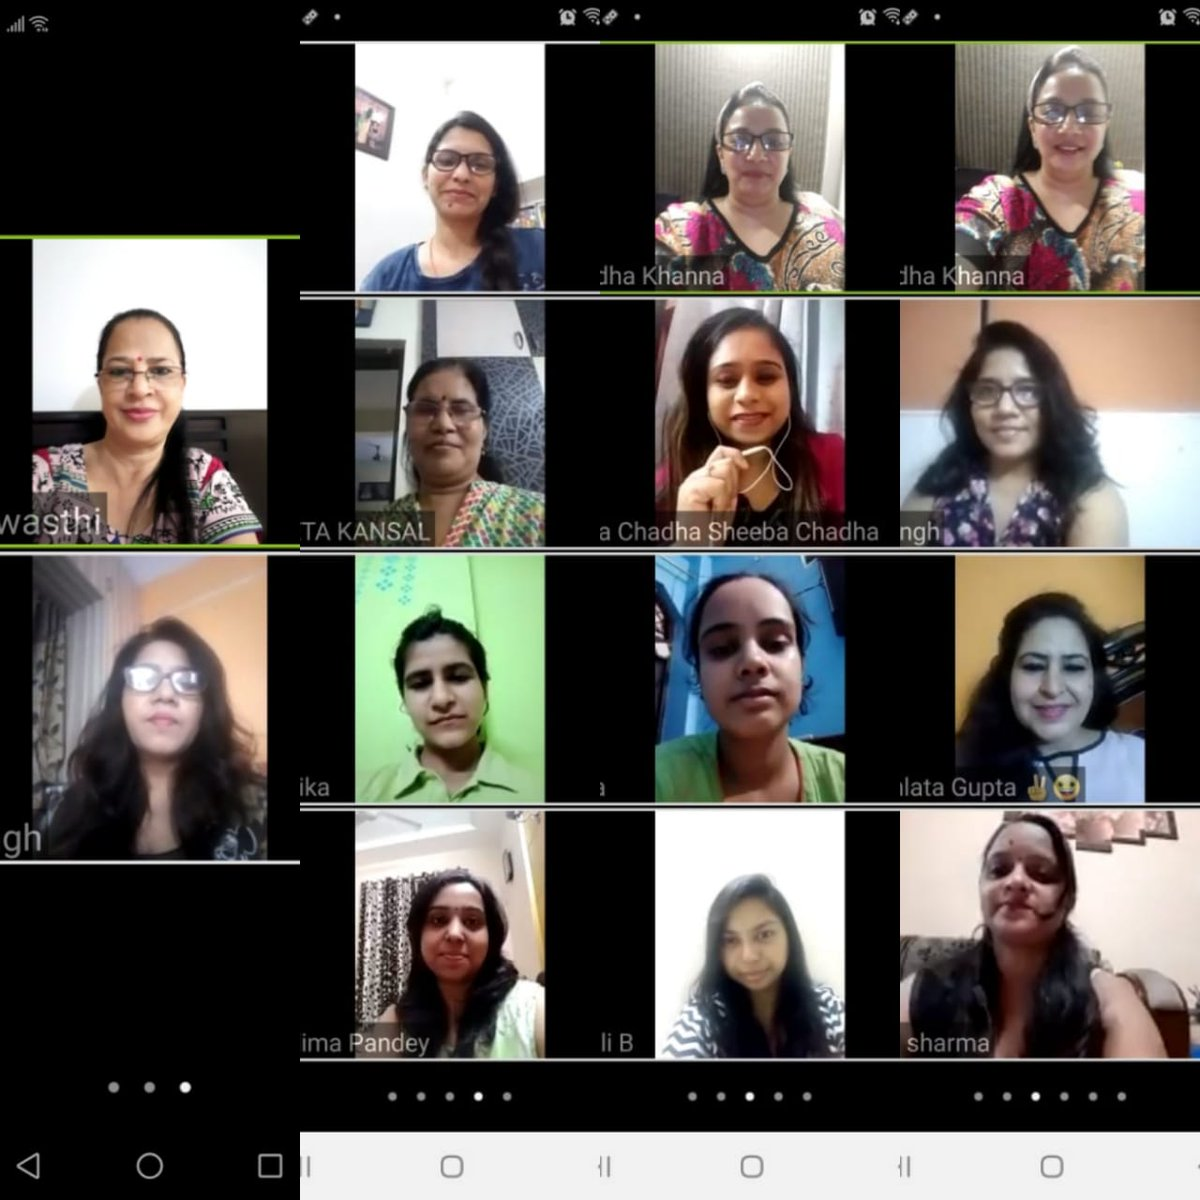 5 days workshop on how you can convert mobile into money making machine       Here we have group pic of virtual class on motivation learning and so much fun.  #aktalks07 #dreamcatcherclub #networkmarketing #MAP_OF_THE_SOUL_7_THE_JOURNEY #KartikAaryan #Xbox #zonauang #COVID19pic.twitter.com/p91ujYvZuP